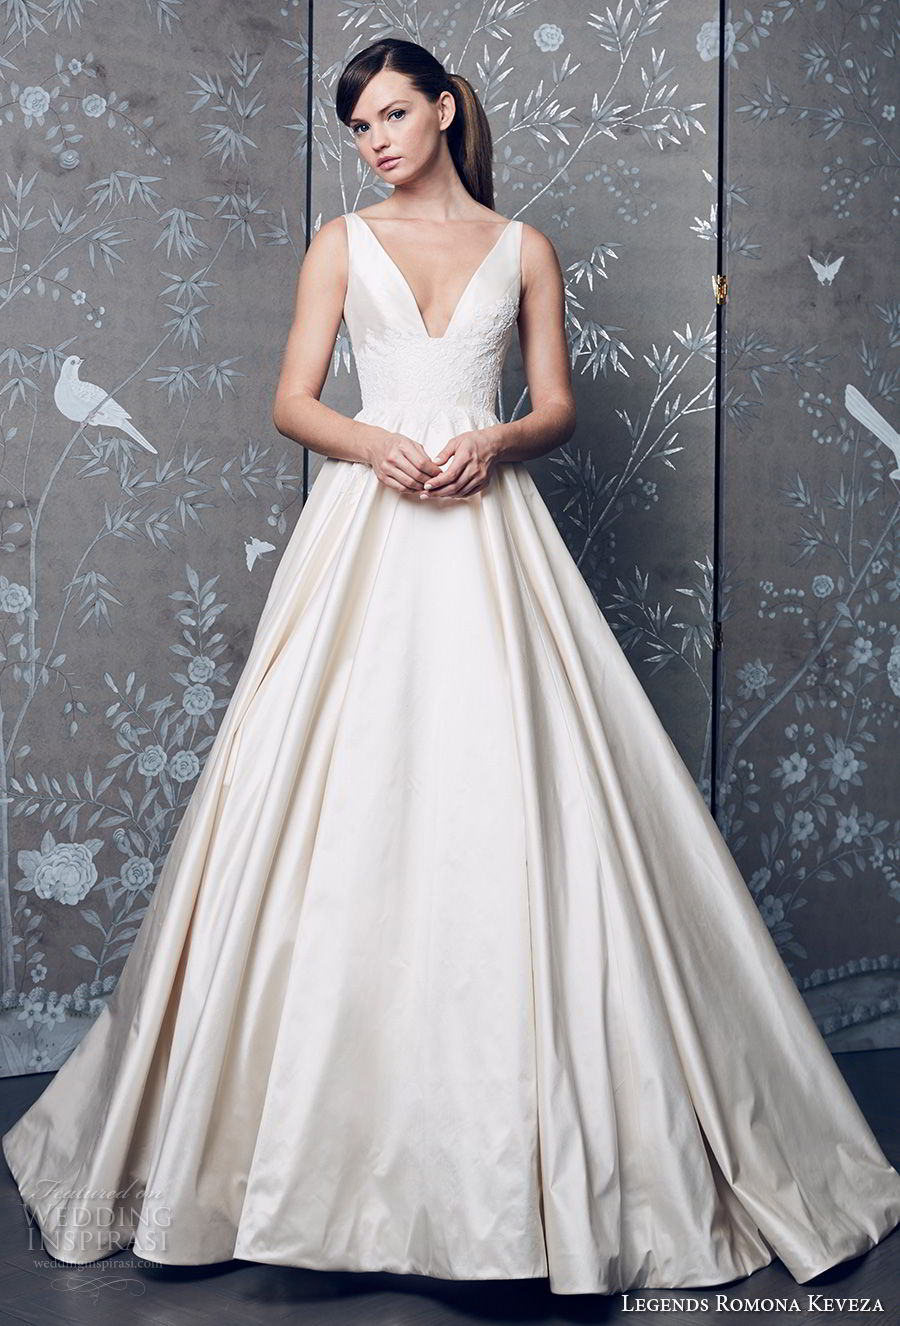 legends romona keveza fall 2018 sleeveless deep v neck simple light embellished bodice satin skirt classic a line wedding dress (5) mv